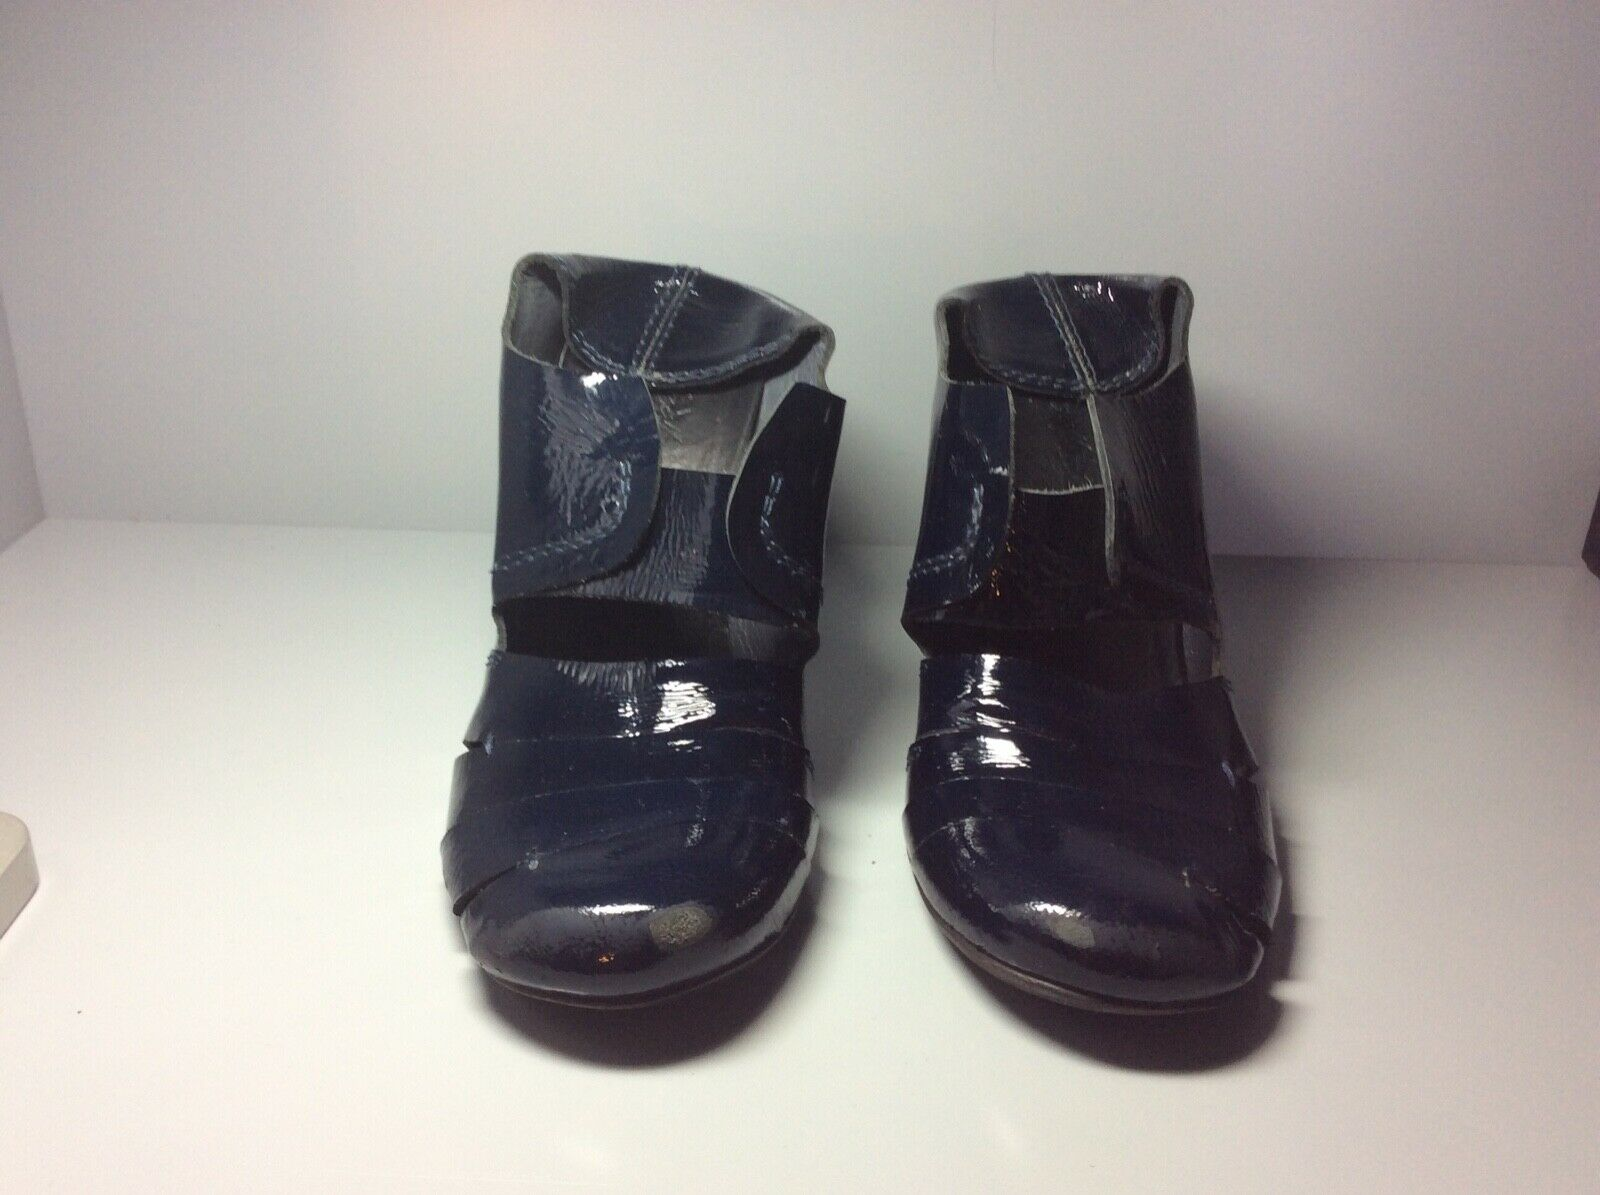 Women's dark bluee patent leather Marsèll shoes size 38